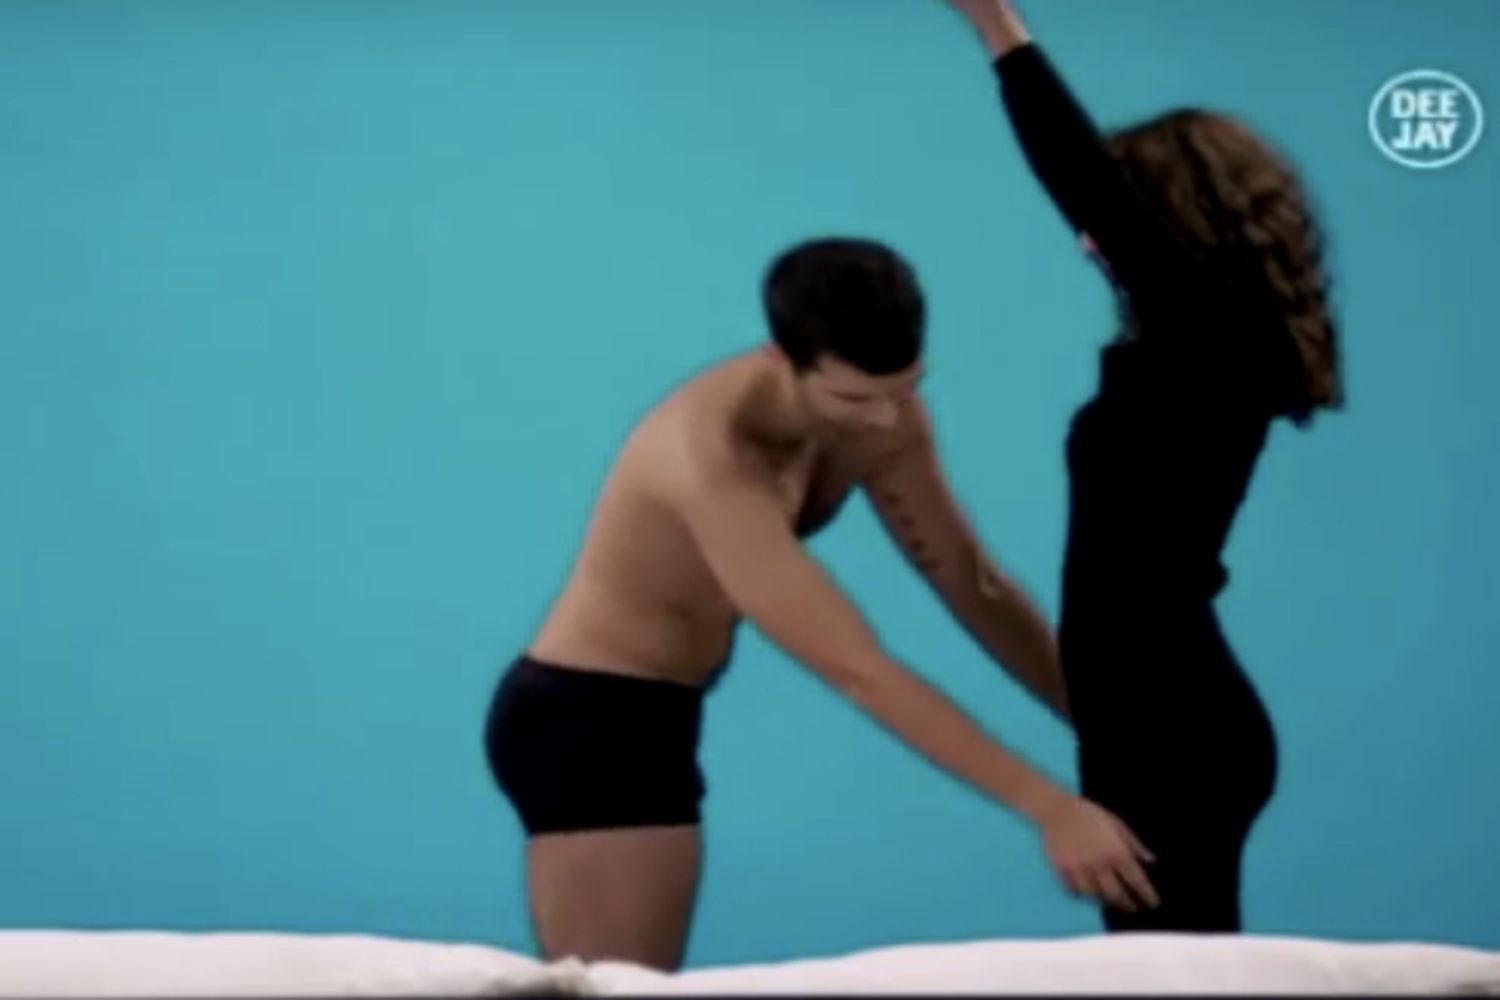 Contestants To Strip Off And Jump Straight Into Bed In New Dating - Awkward video shows strangers undressing eachother